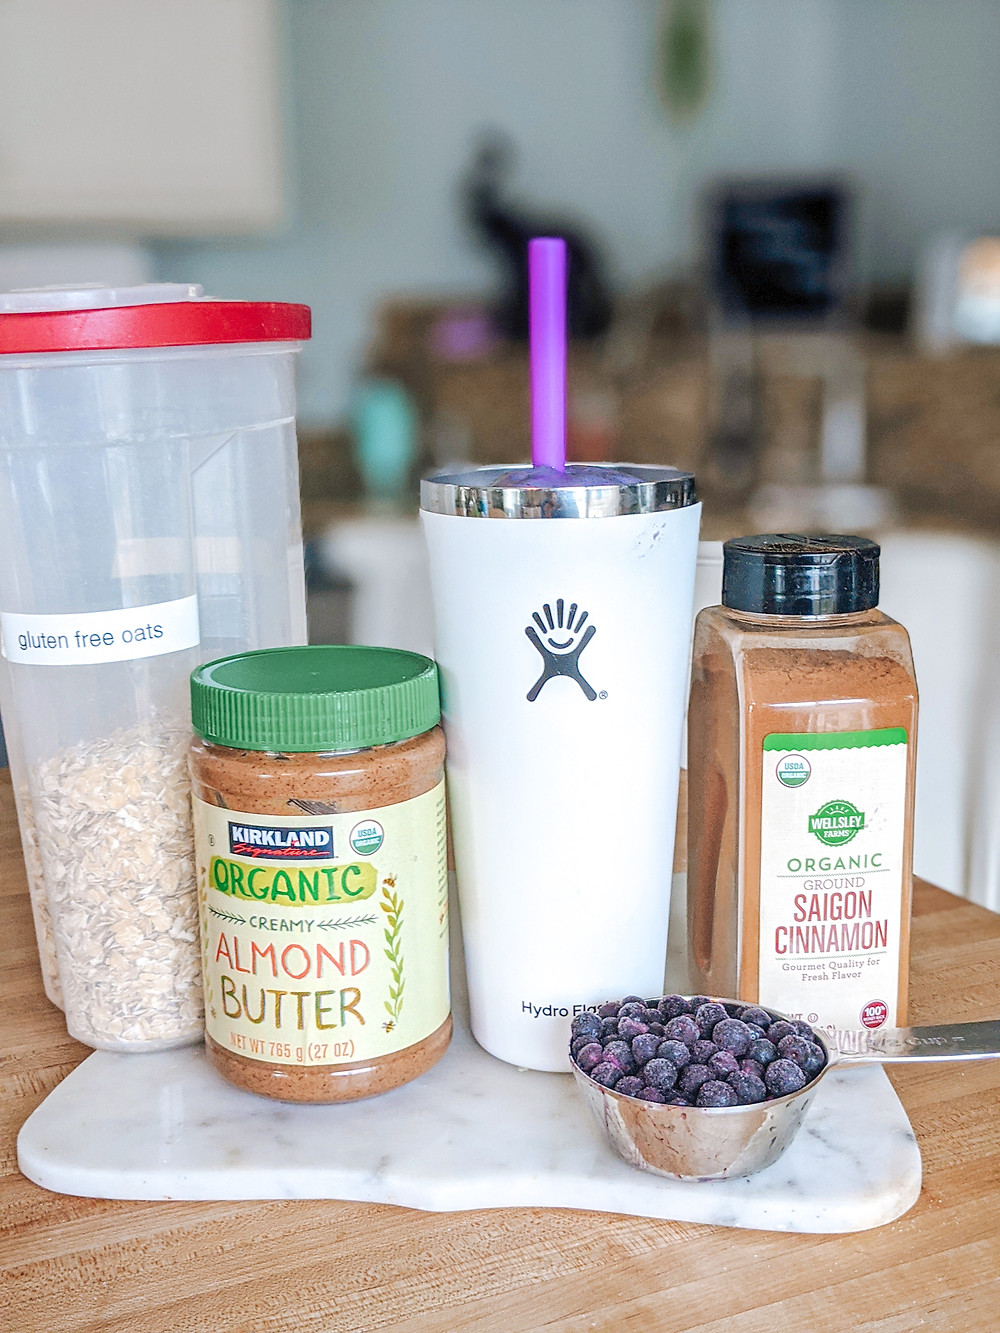 plant based, smoothie, smoothie recipe, healthy smoothie, healthy breakfast, smoothie recipe, protein smoothie, vegan recipe, plant based recipe, healthy fats, eating clean, clean eats, blueberry, blueberry muffin, dairy free, gluten fee, healthy fast food, paleo smoothie, keto smoothie, whole 30 recipe, real food, fitness, fitness food, health lifestyle, health tip, wellness, wellness blogger, blogger, healthy blogger, weight loss, low carb, fab four smoothie, get fit, lose weight, weight loss journey, healthy eating, easy recipe, smoothie